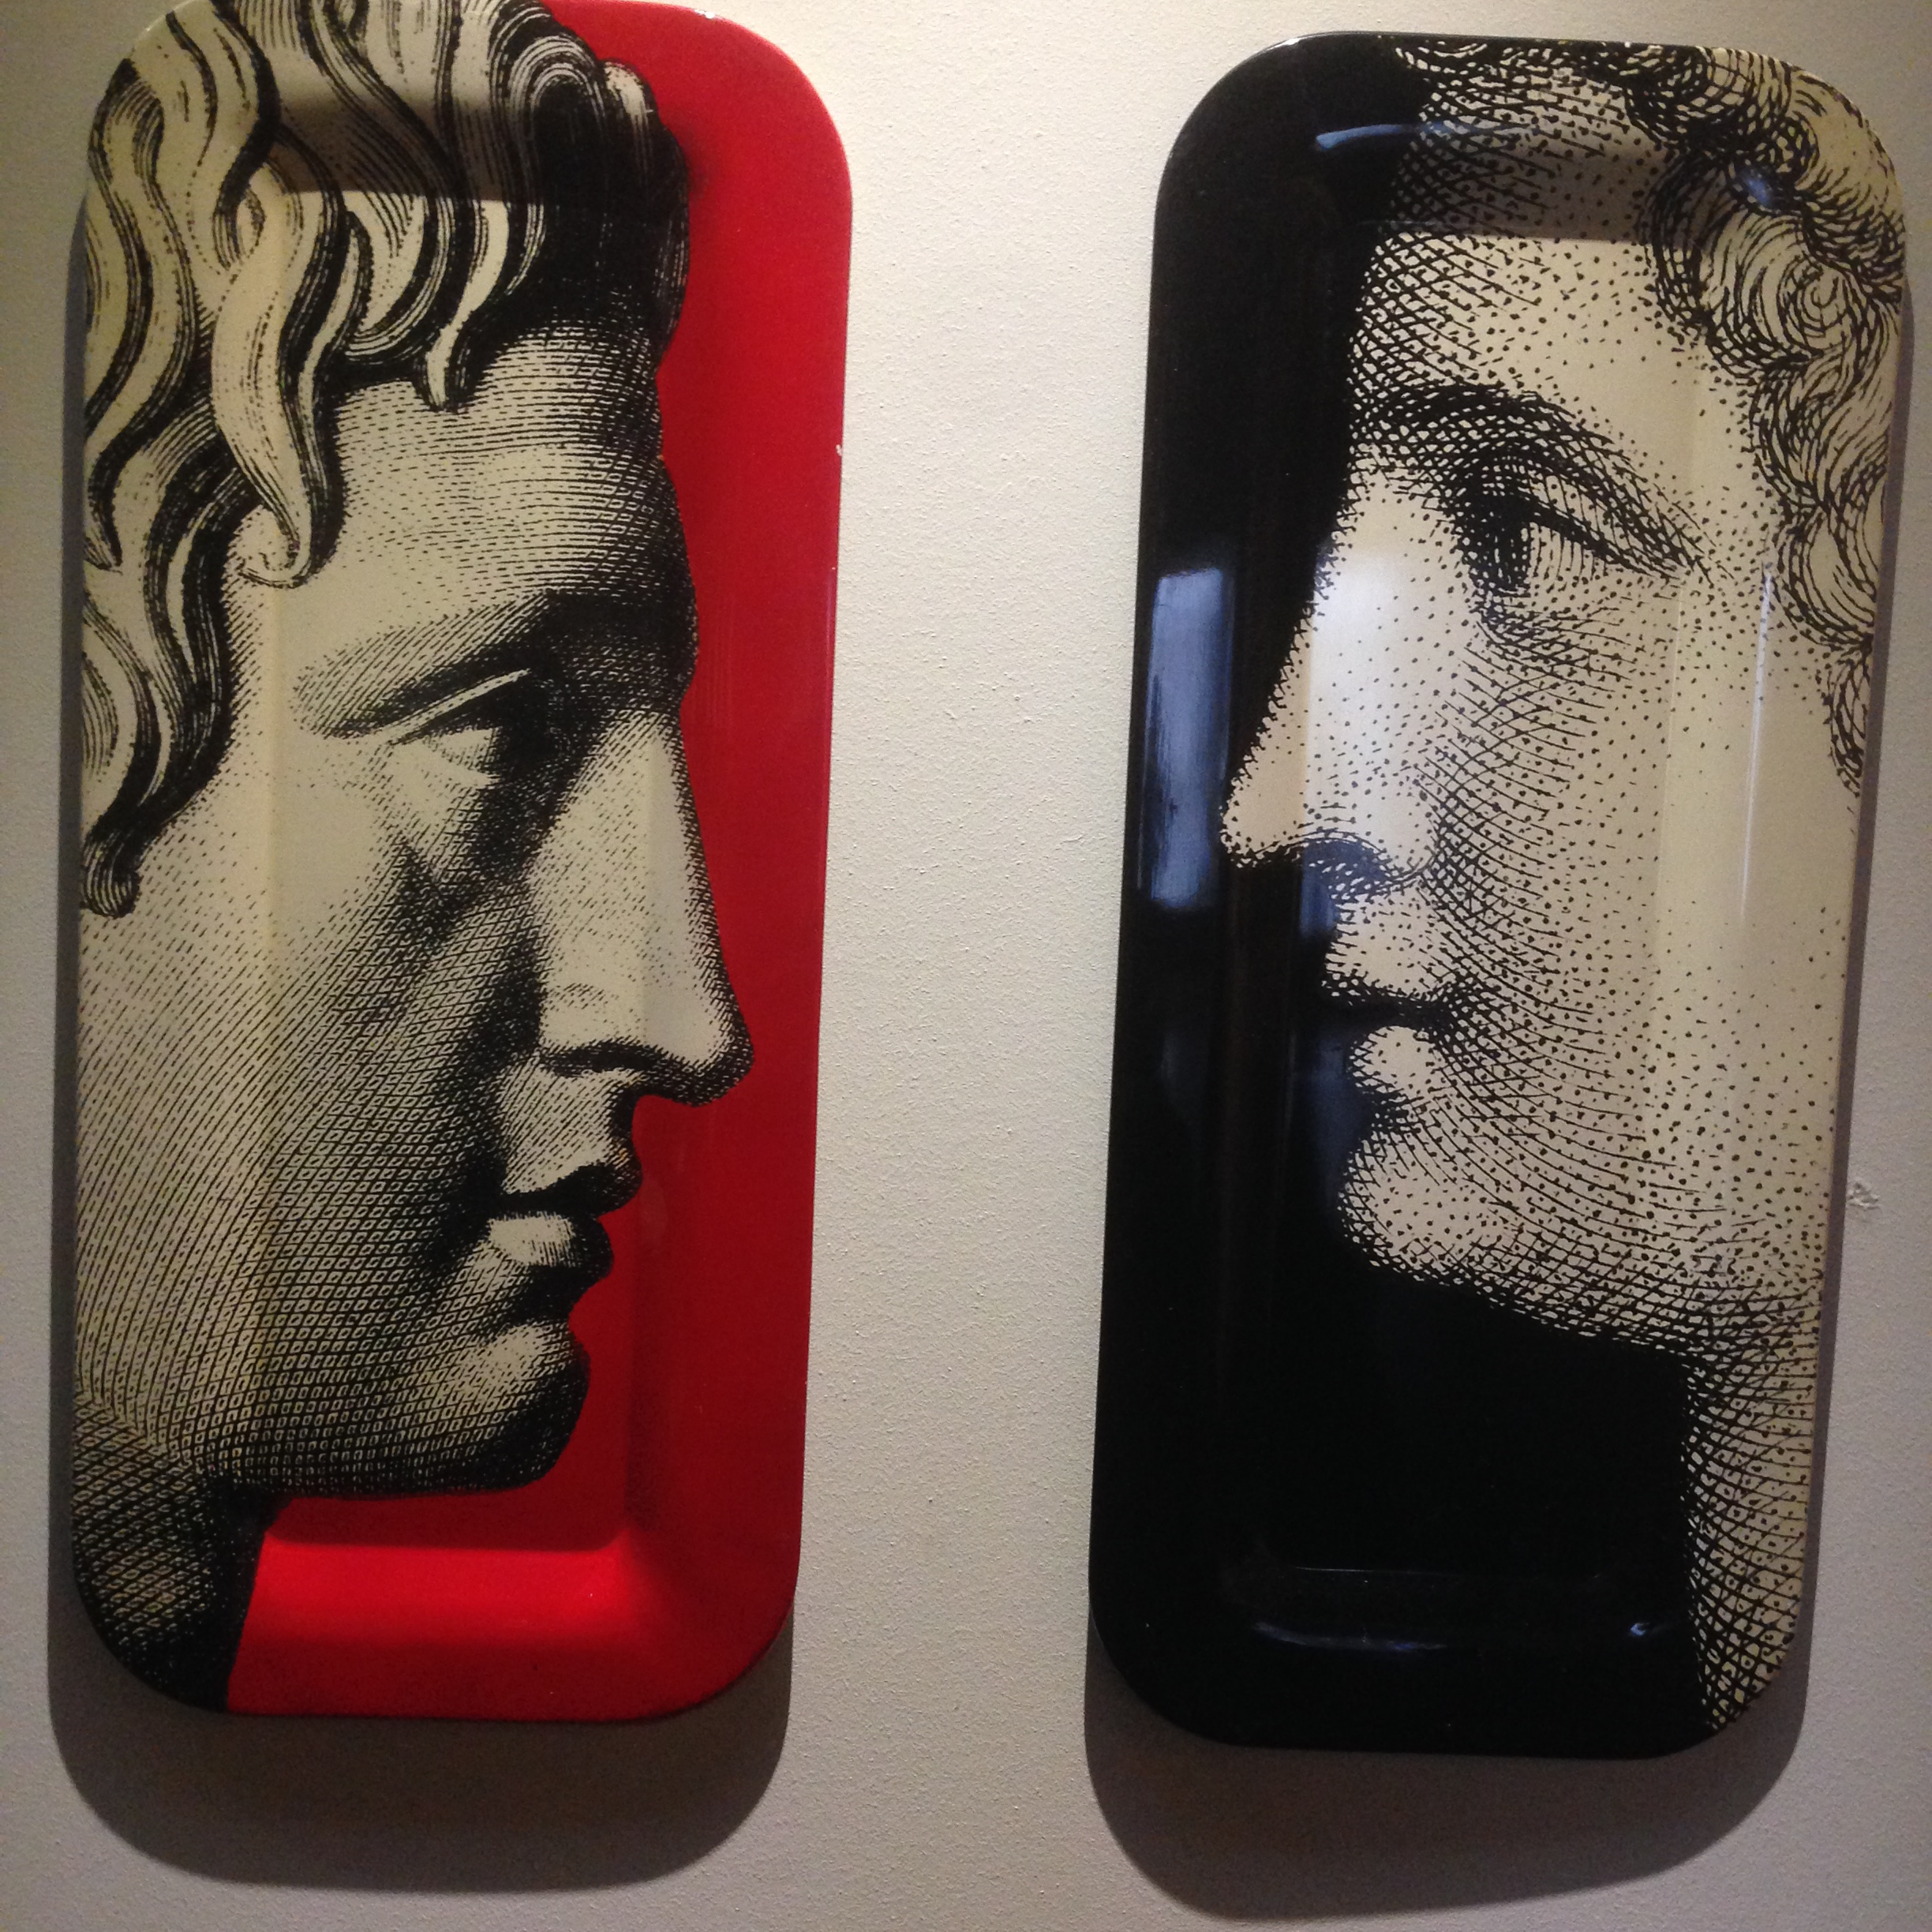 asvof-2015-03-10-barnabe_fornasetti_takes_me_on_a_tour_of_the_piero_fornasetti_the_practical_madness_exhibition_at_les_arts_decoratifs_on_until_june_14th-diane_pernet-1230928723.jpg